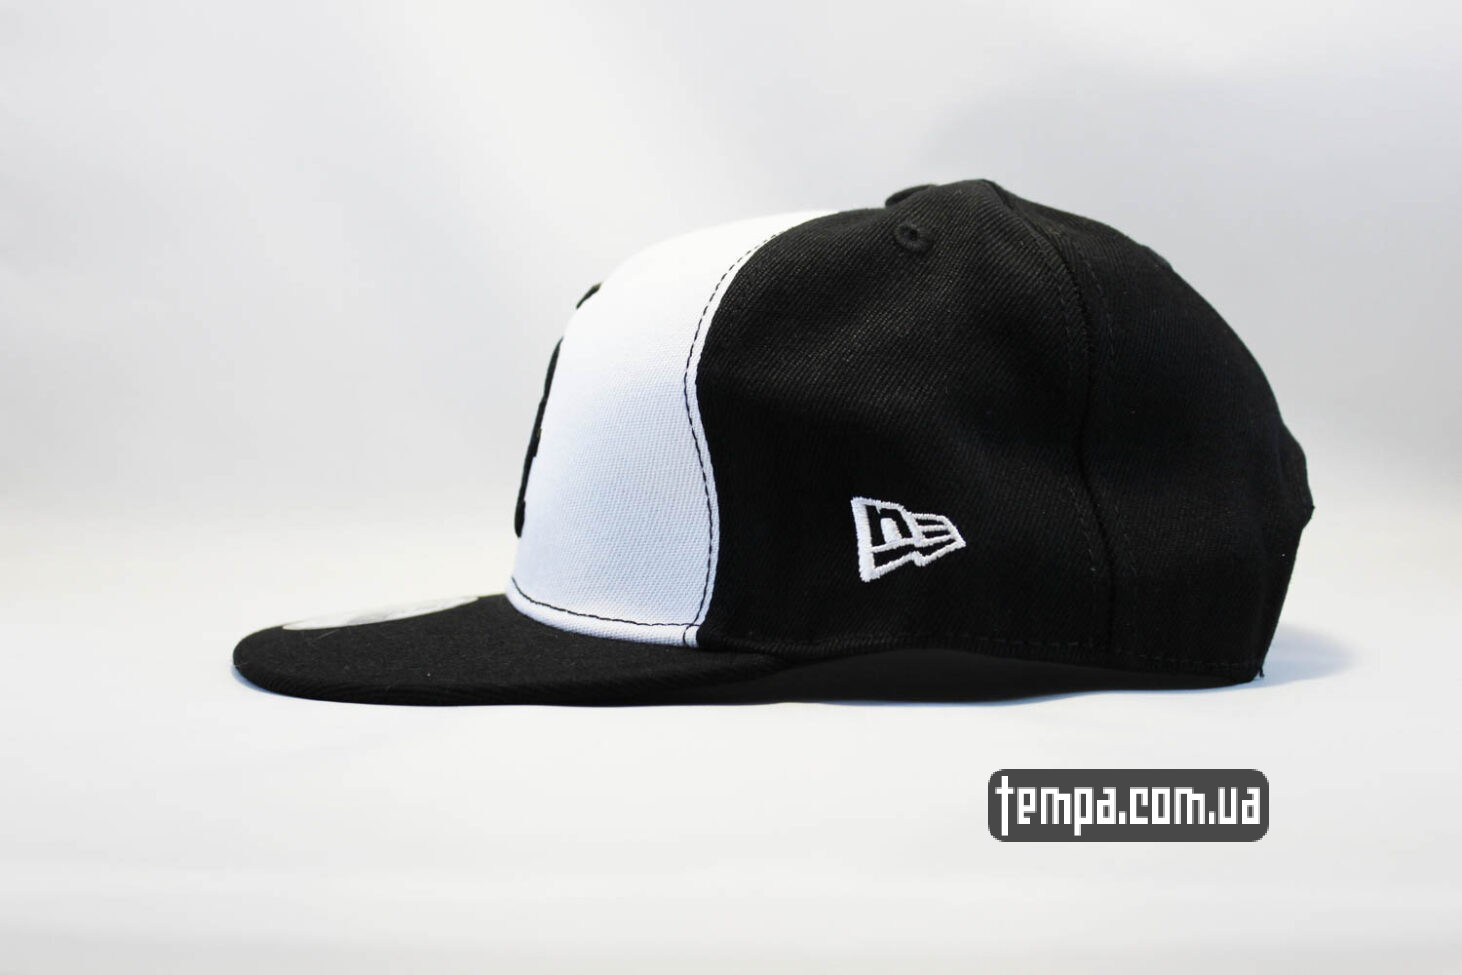 бейсболная кепка snapback White Sox New Era 9fifty черно-белая